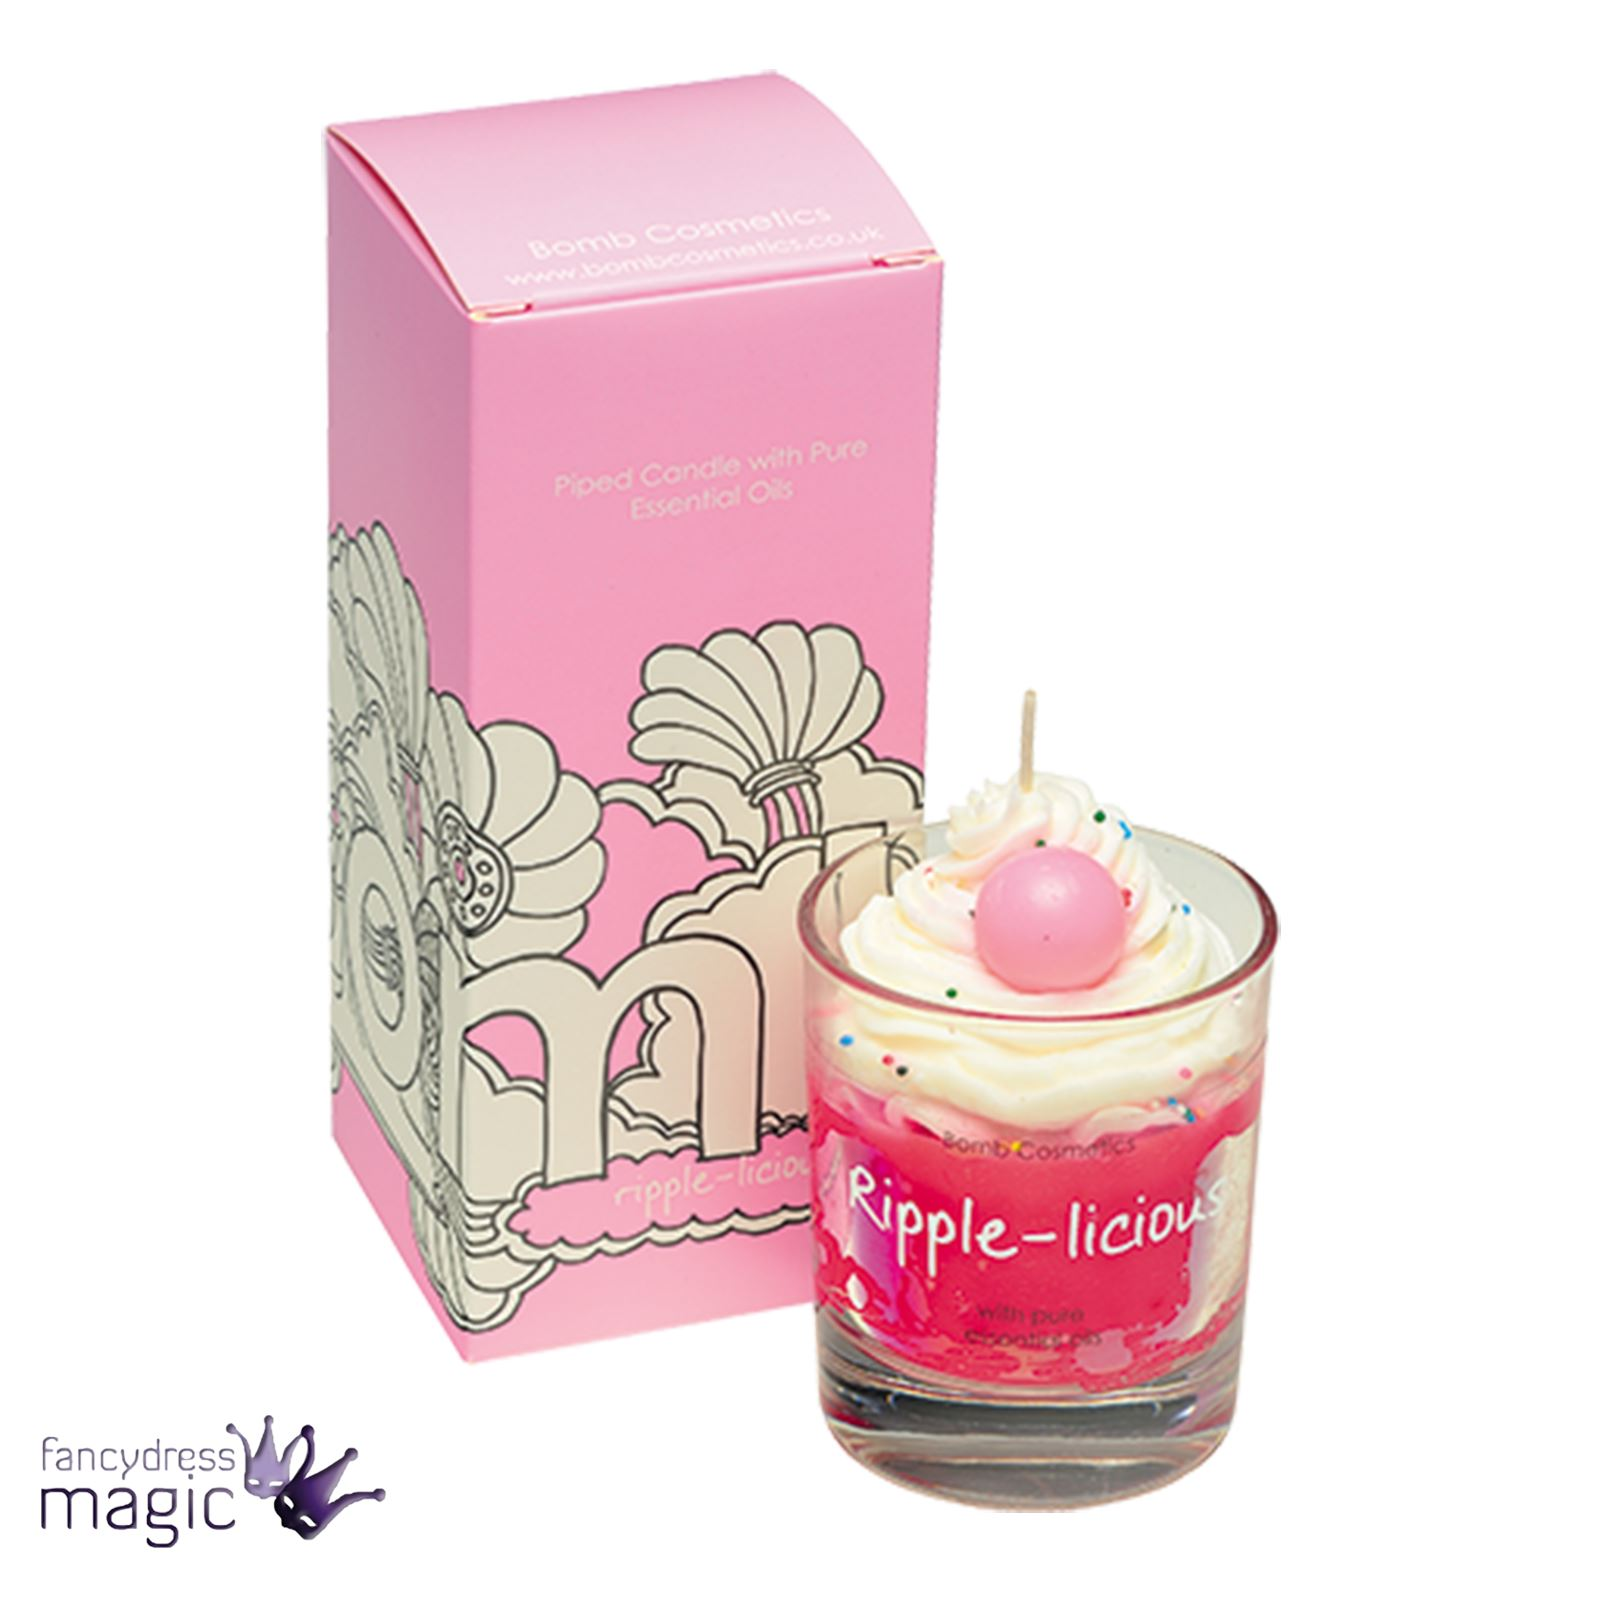 Bomb-Cosmetics-Handmade-Piped-Glass-Candle-Vegan-Pure-Essential-Oils-Boxed-Gift thumbnail 27